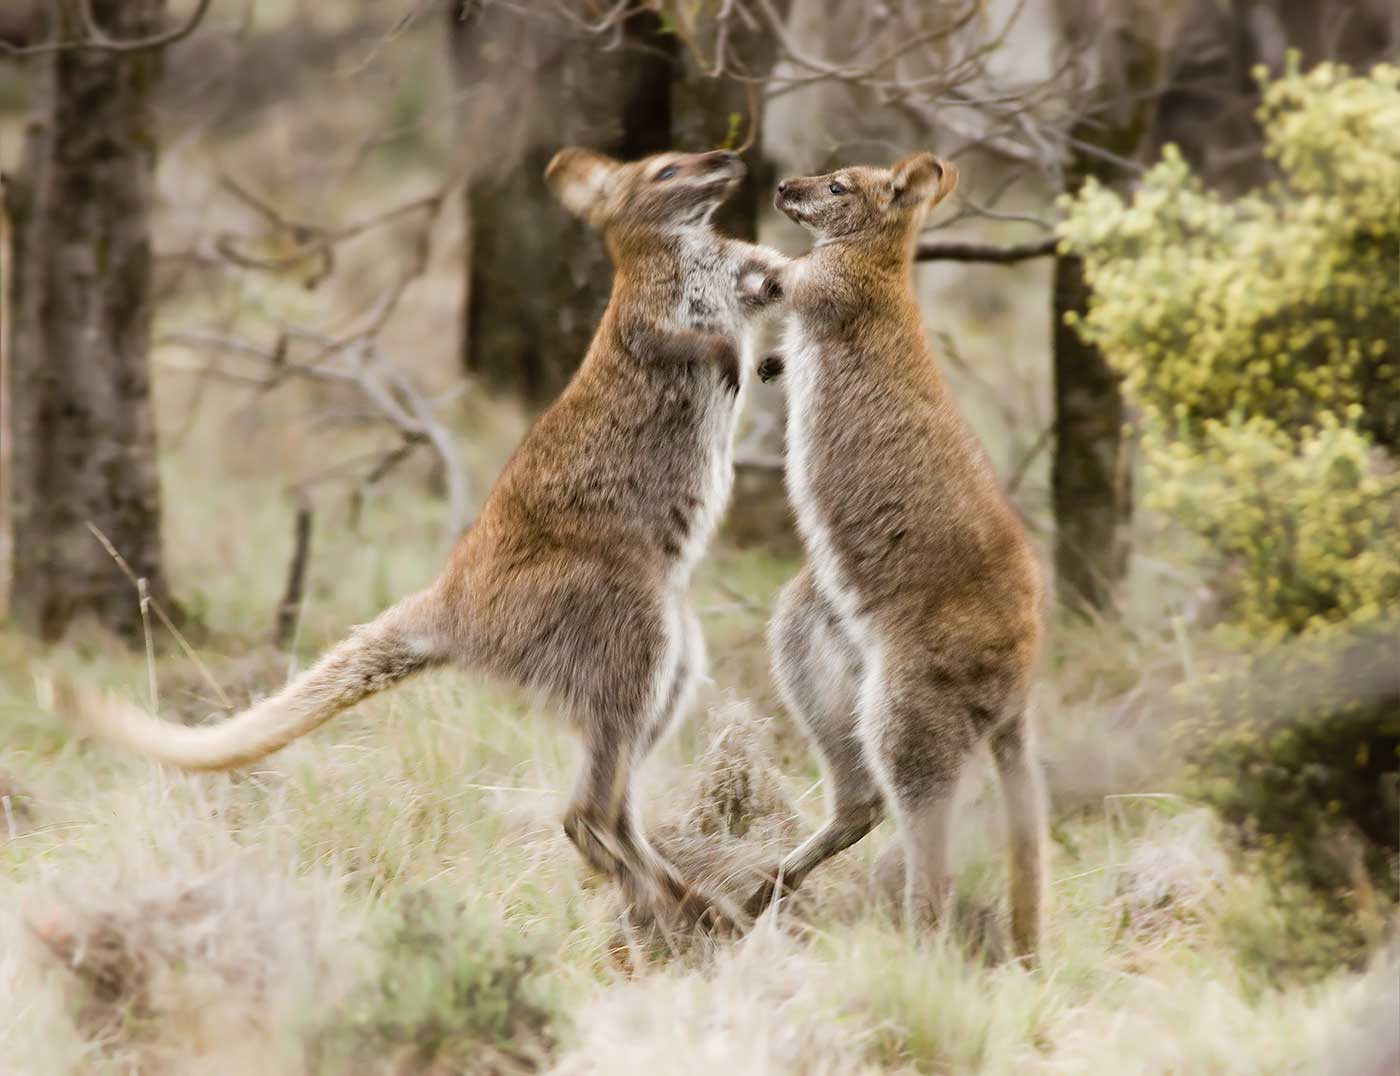 Two wallabies fighting - click to view larger image